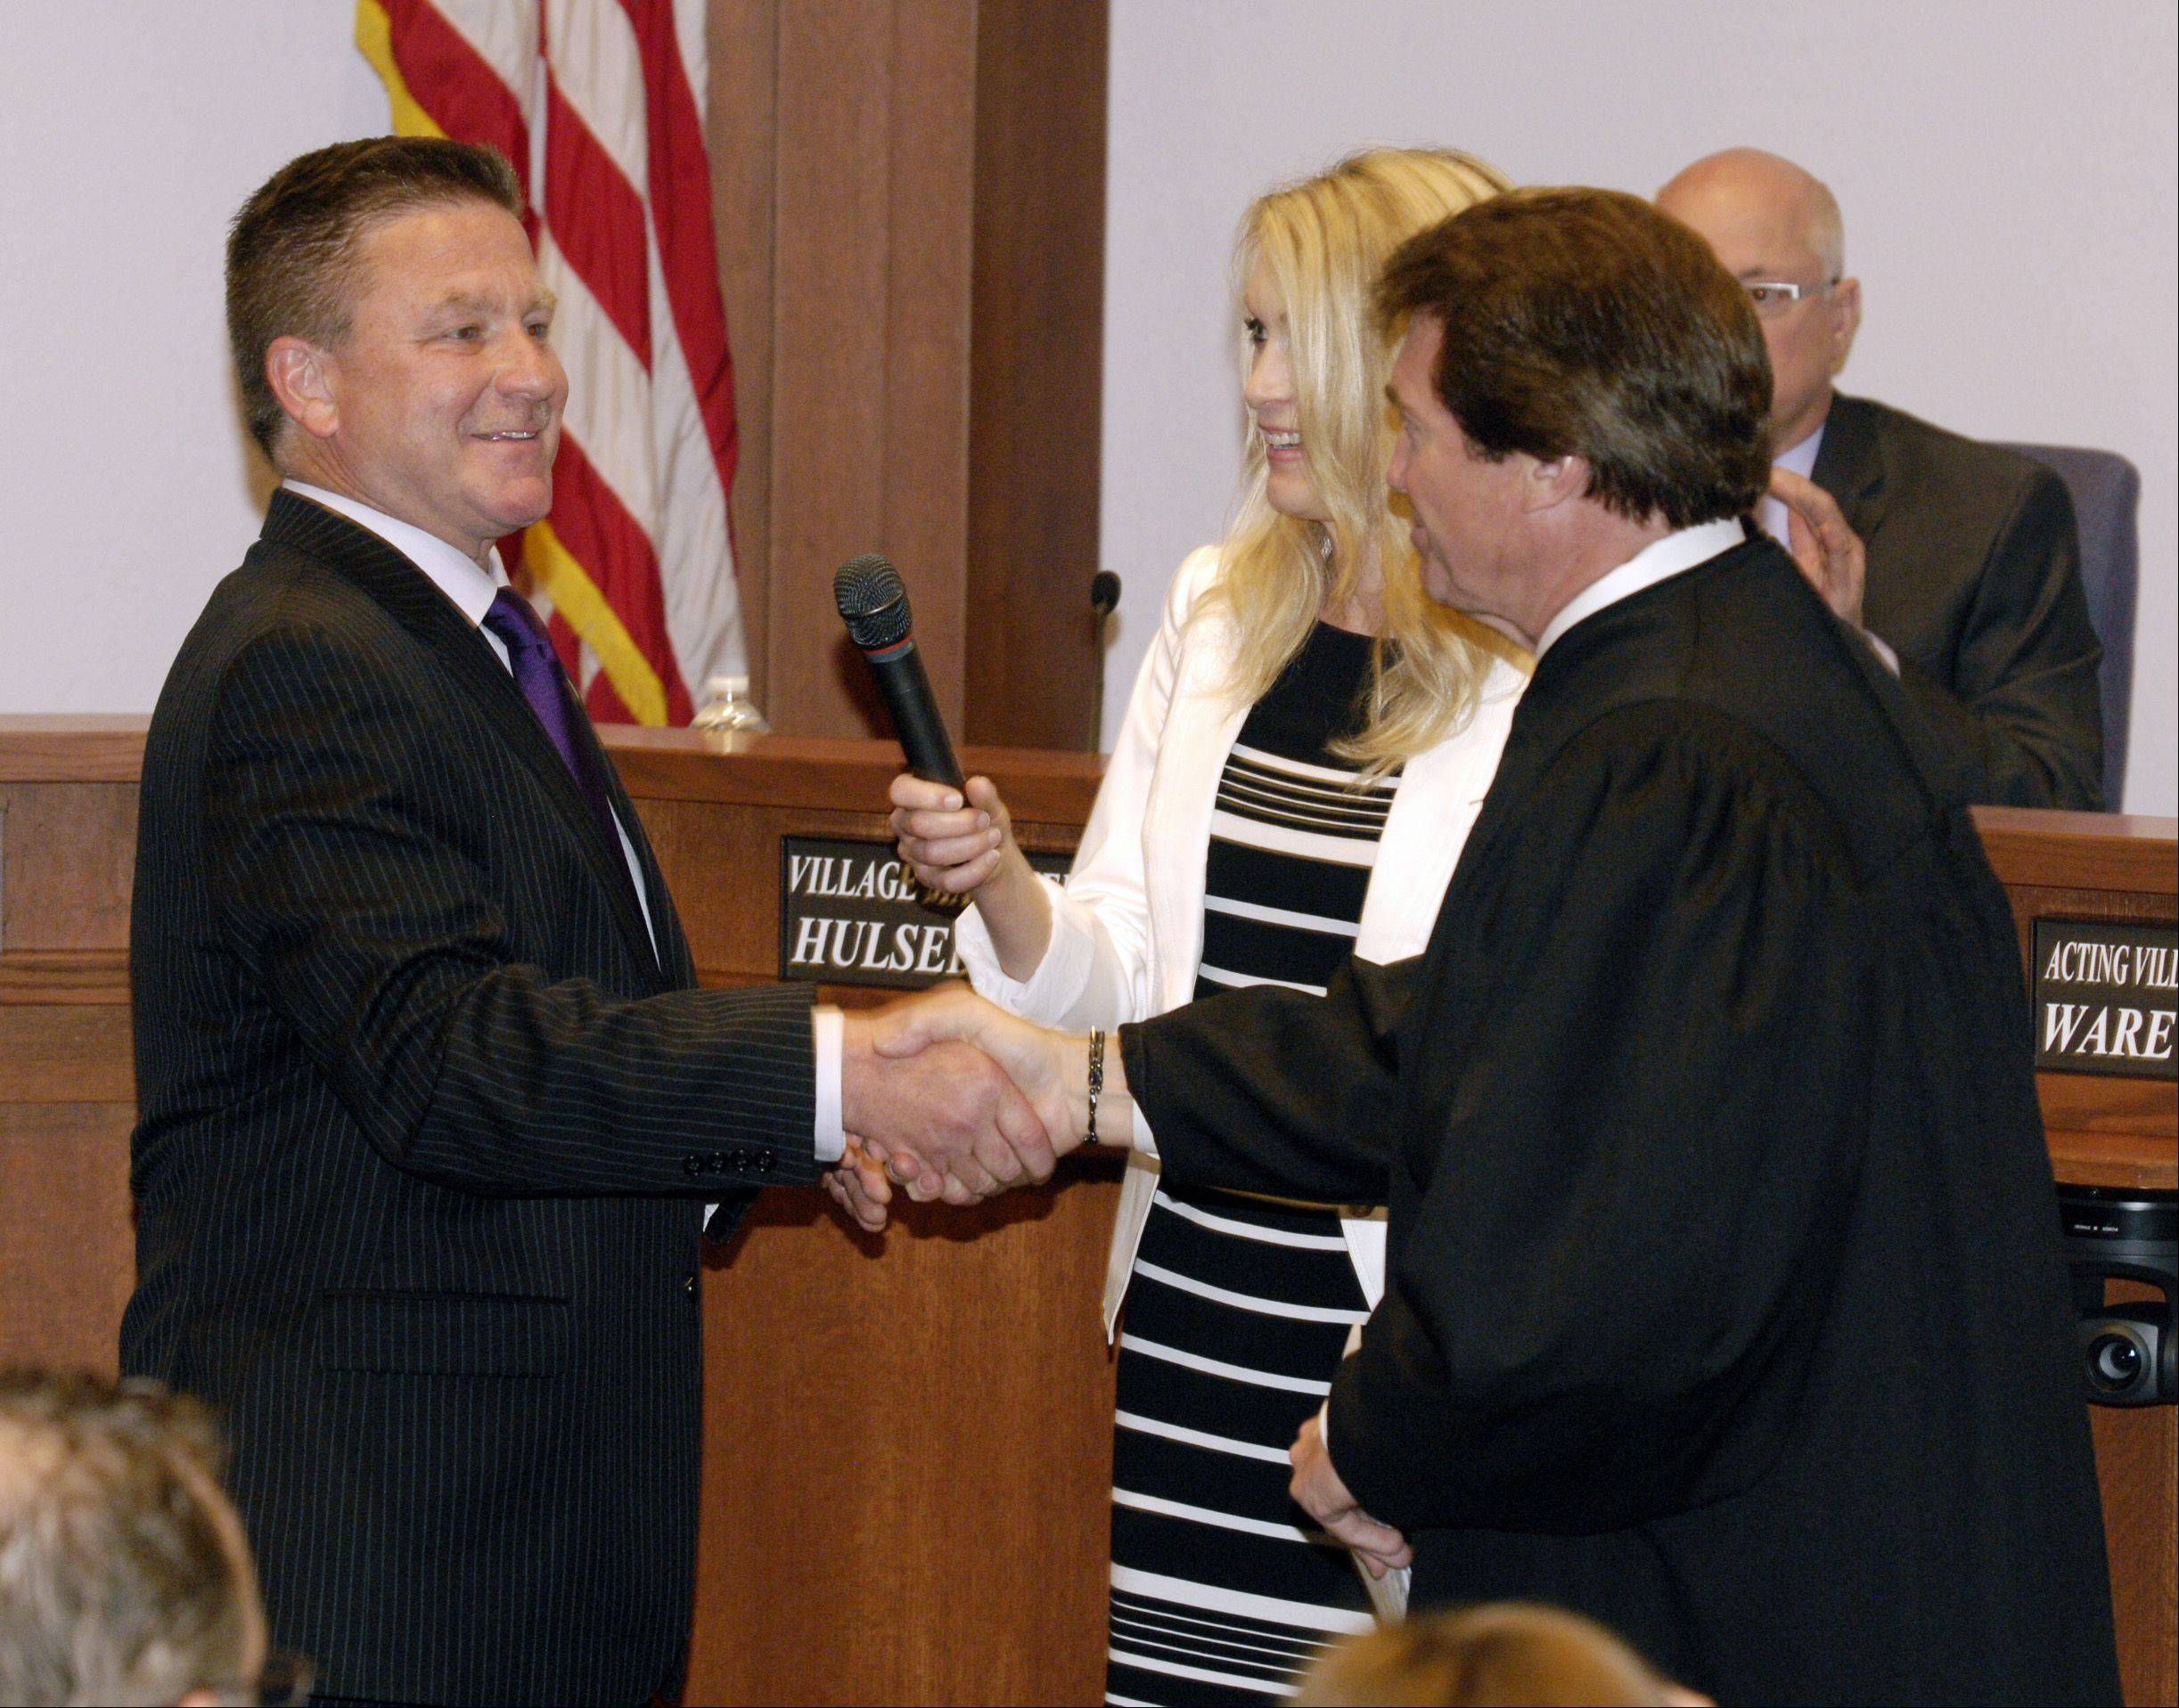 By the time Lombard Village President Keith Giagnorio took the oath of office and shook hands with DuPage County Judge Patrick O'Shea, he already had helped lead the village through severe flooding and the beginning of the cleanup process. Giagnorio will lead the Lilac Village the next four years after beating John Lotus Novak and Moon Khan in the April 9 election.